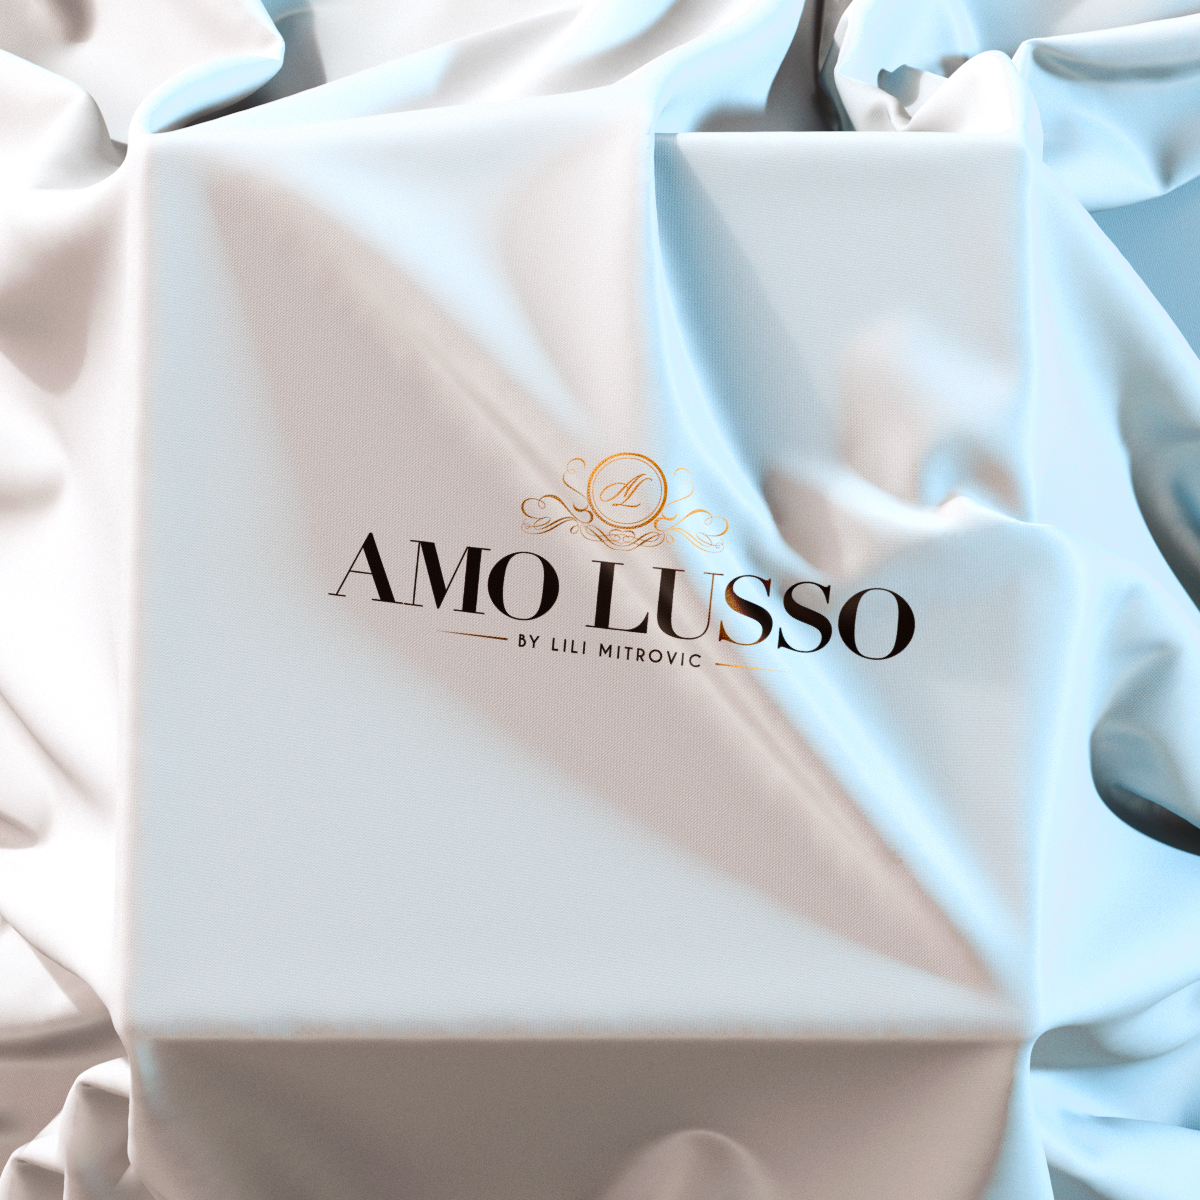 Branding, logo design, web design, social media marketing art, catalogue, stationery & package design for Amo Lusso bridal atelier by Lili Mitrovic.